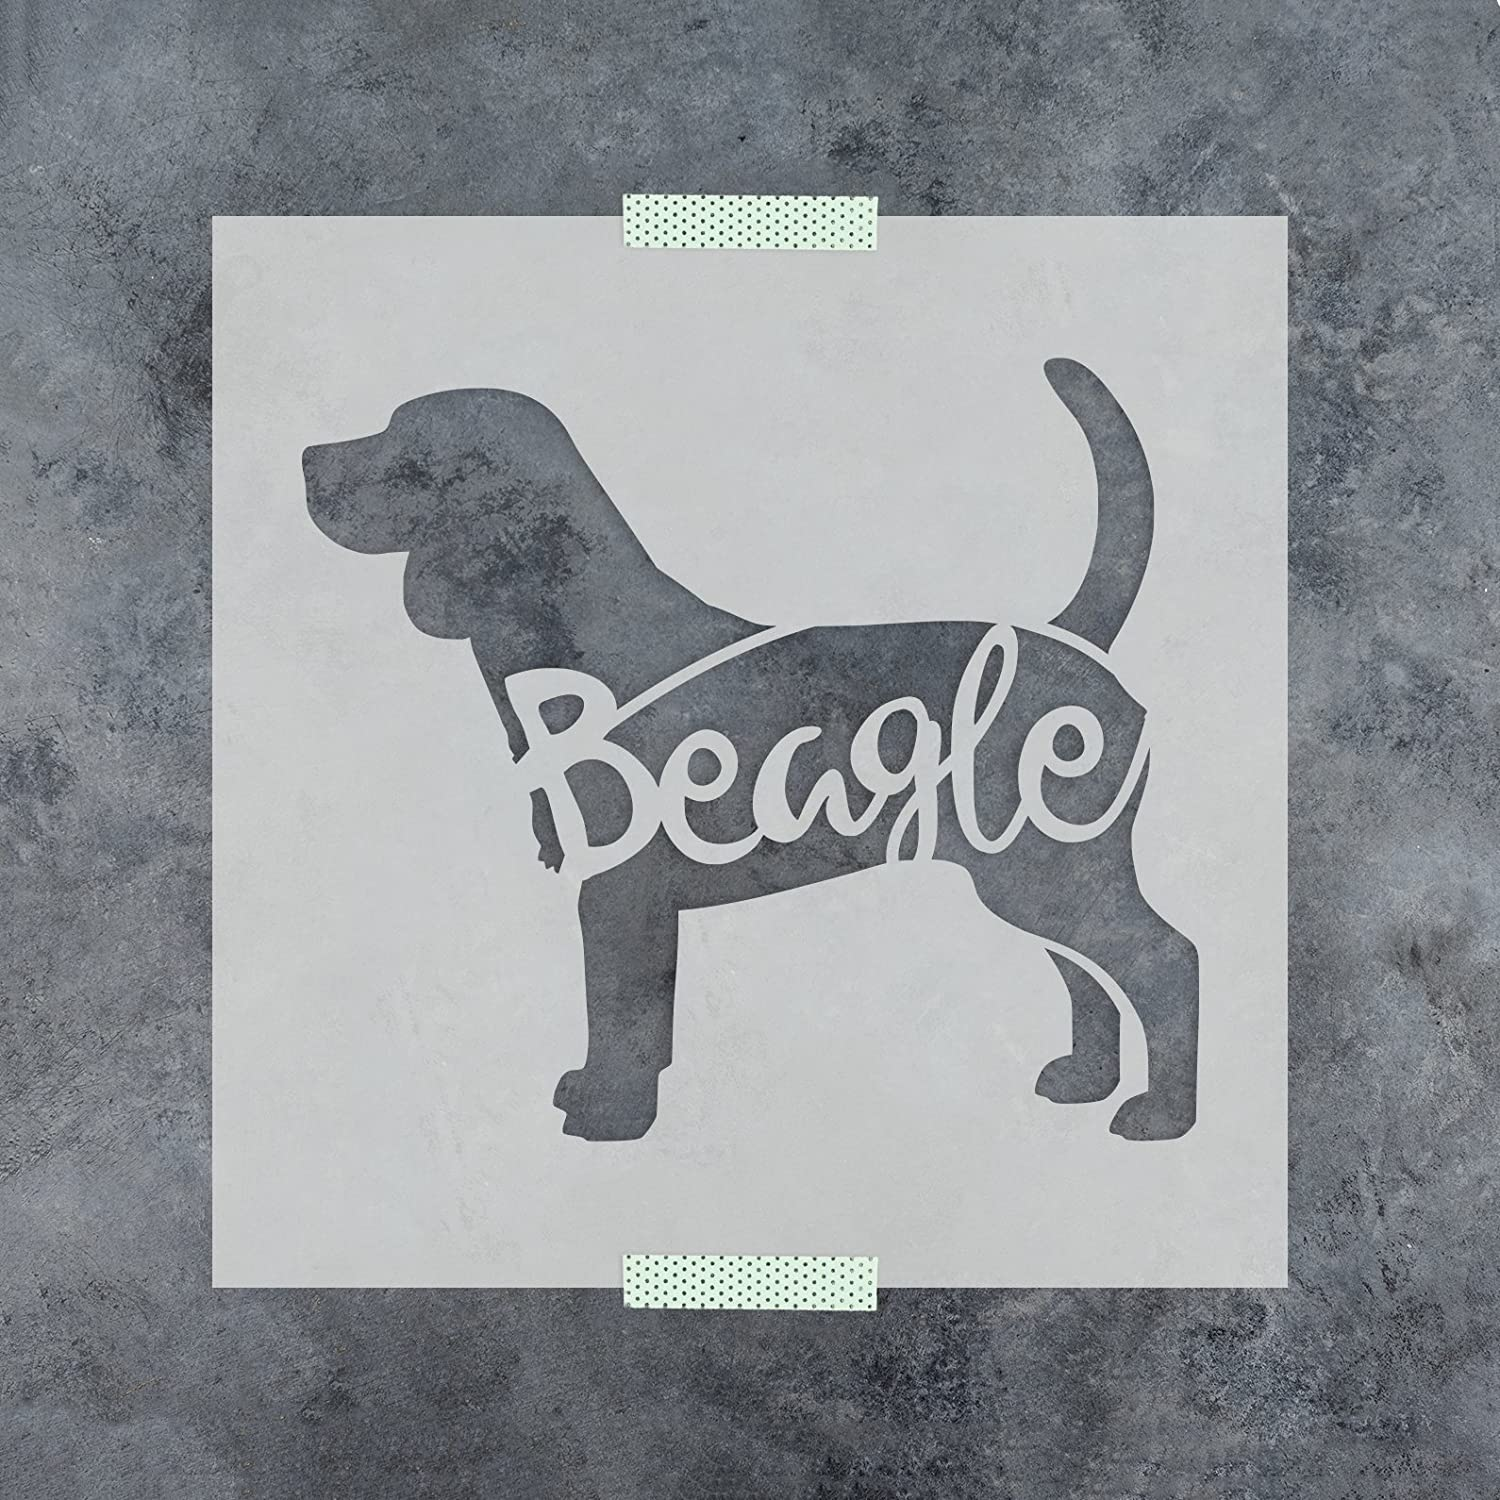 Beagle Stencil Template for Walls and Crafts Reusable Stencils for Painting in Small /& Large Sizes